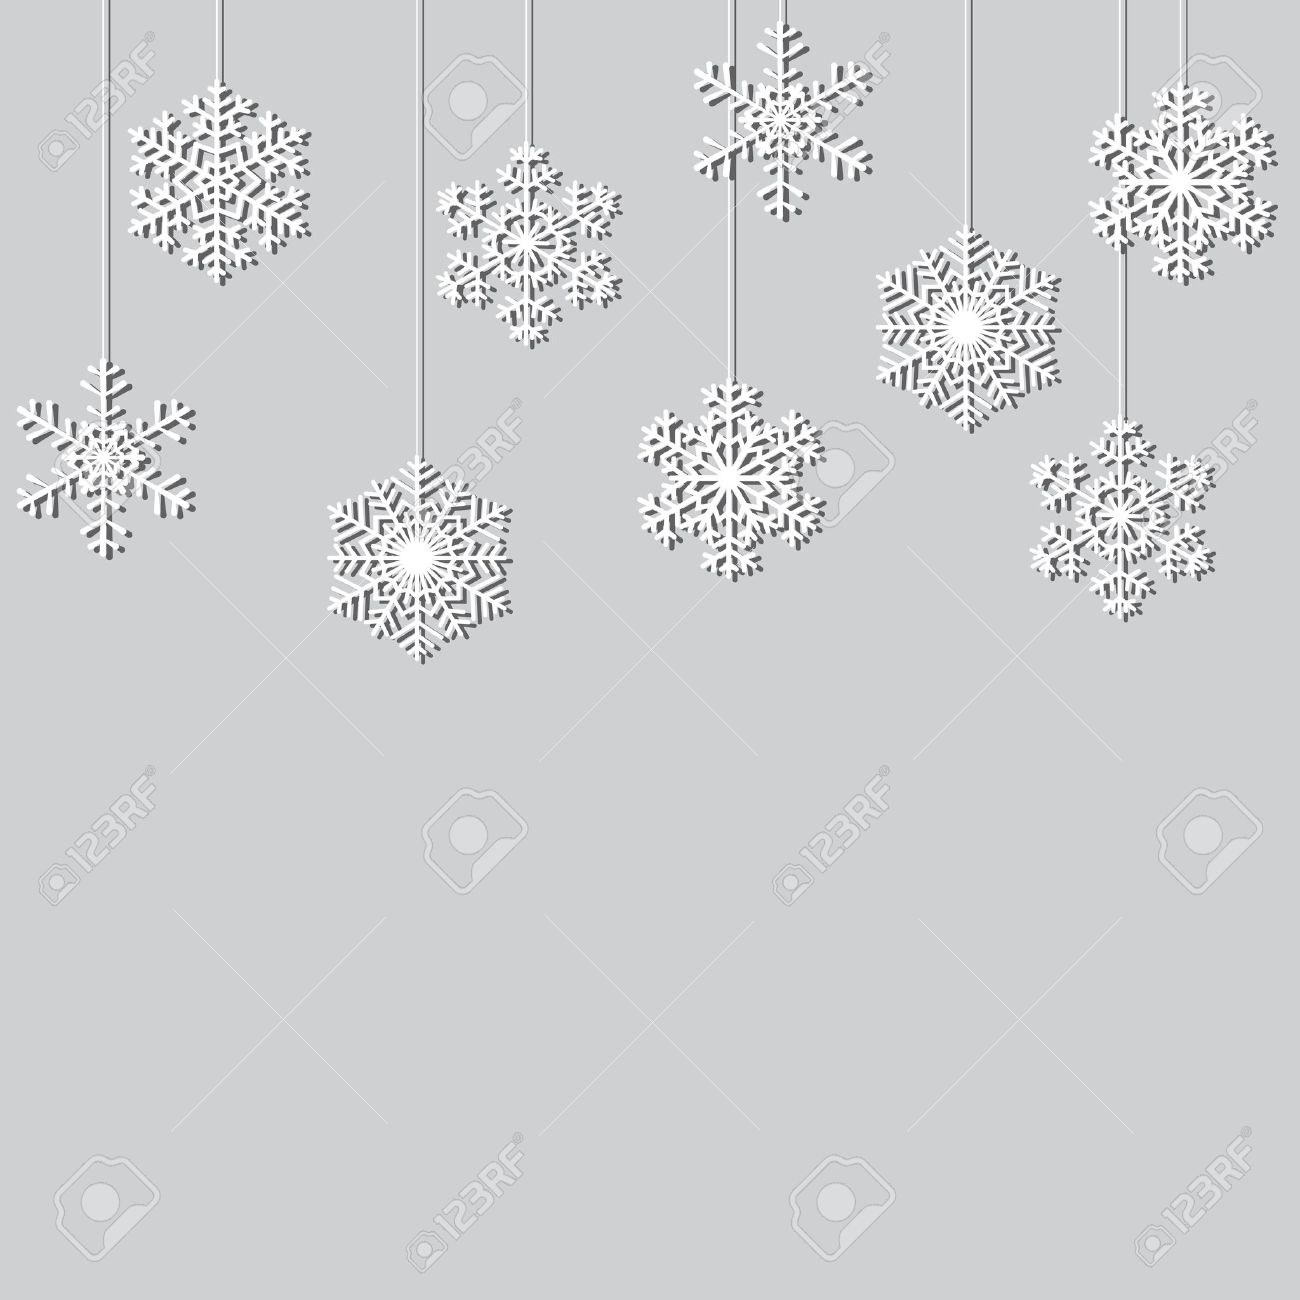 hanging paper snowflakes christmas background royalty free